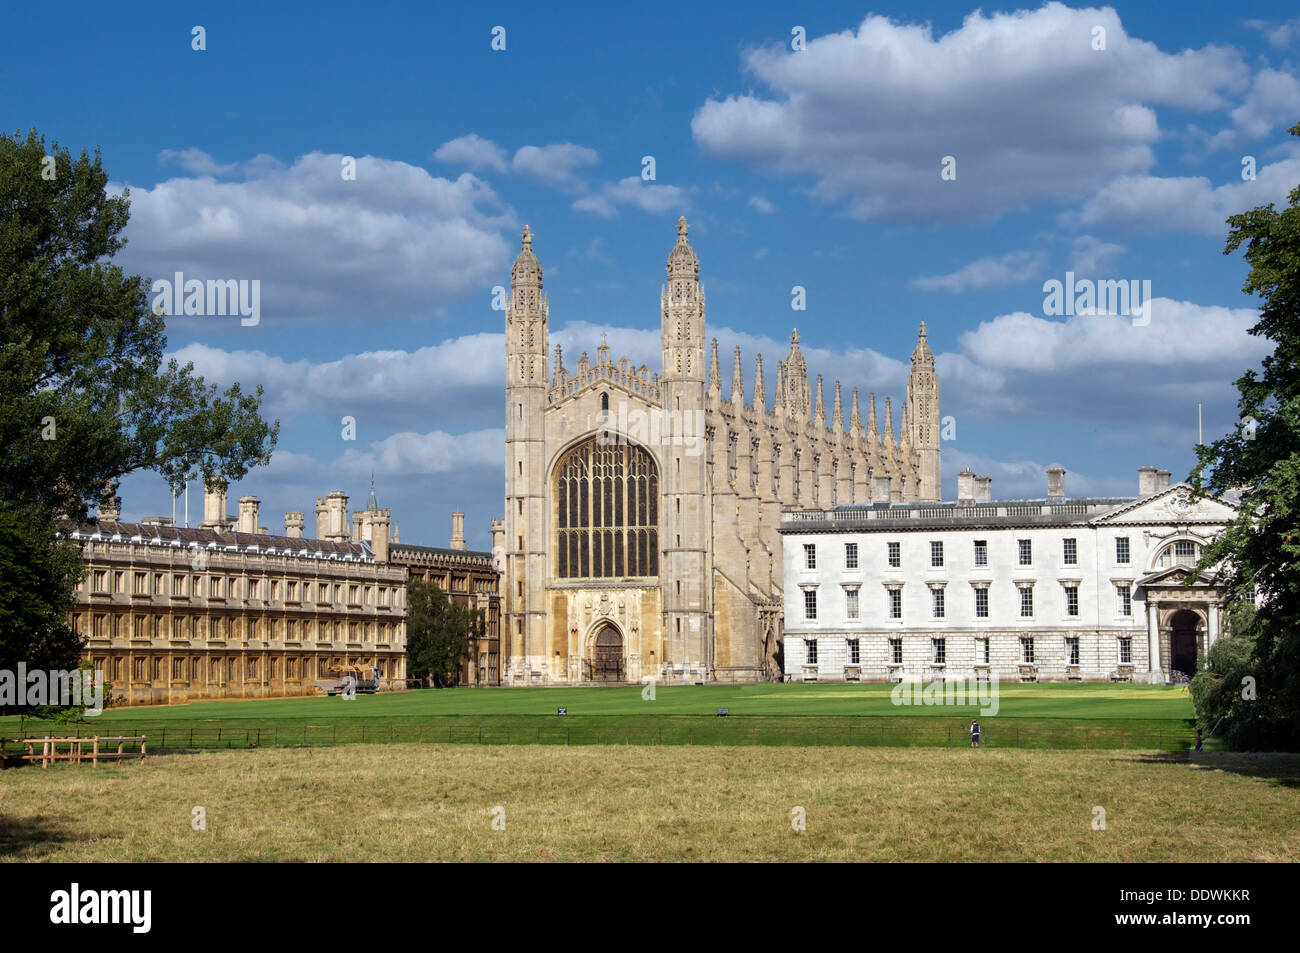 Panoramic view Kings College Cambridge University as seen from Backs Cambridgeshire England - Stock Image